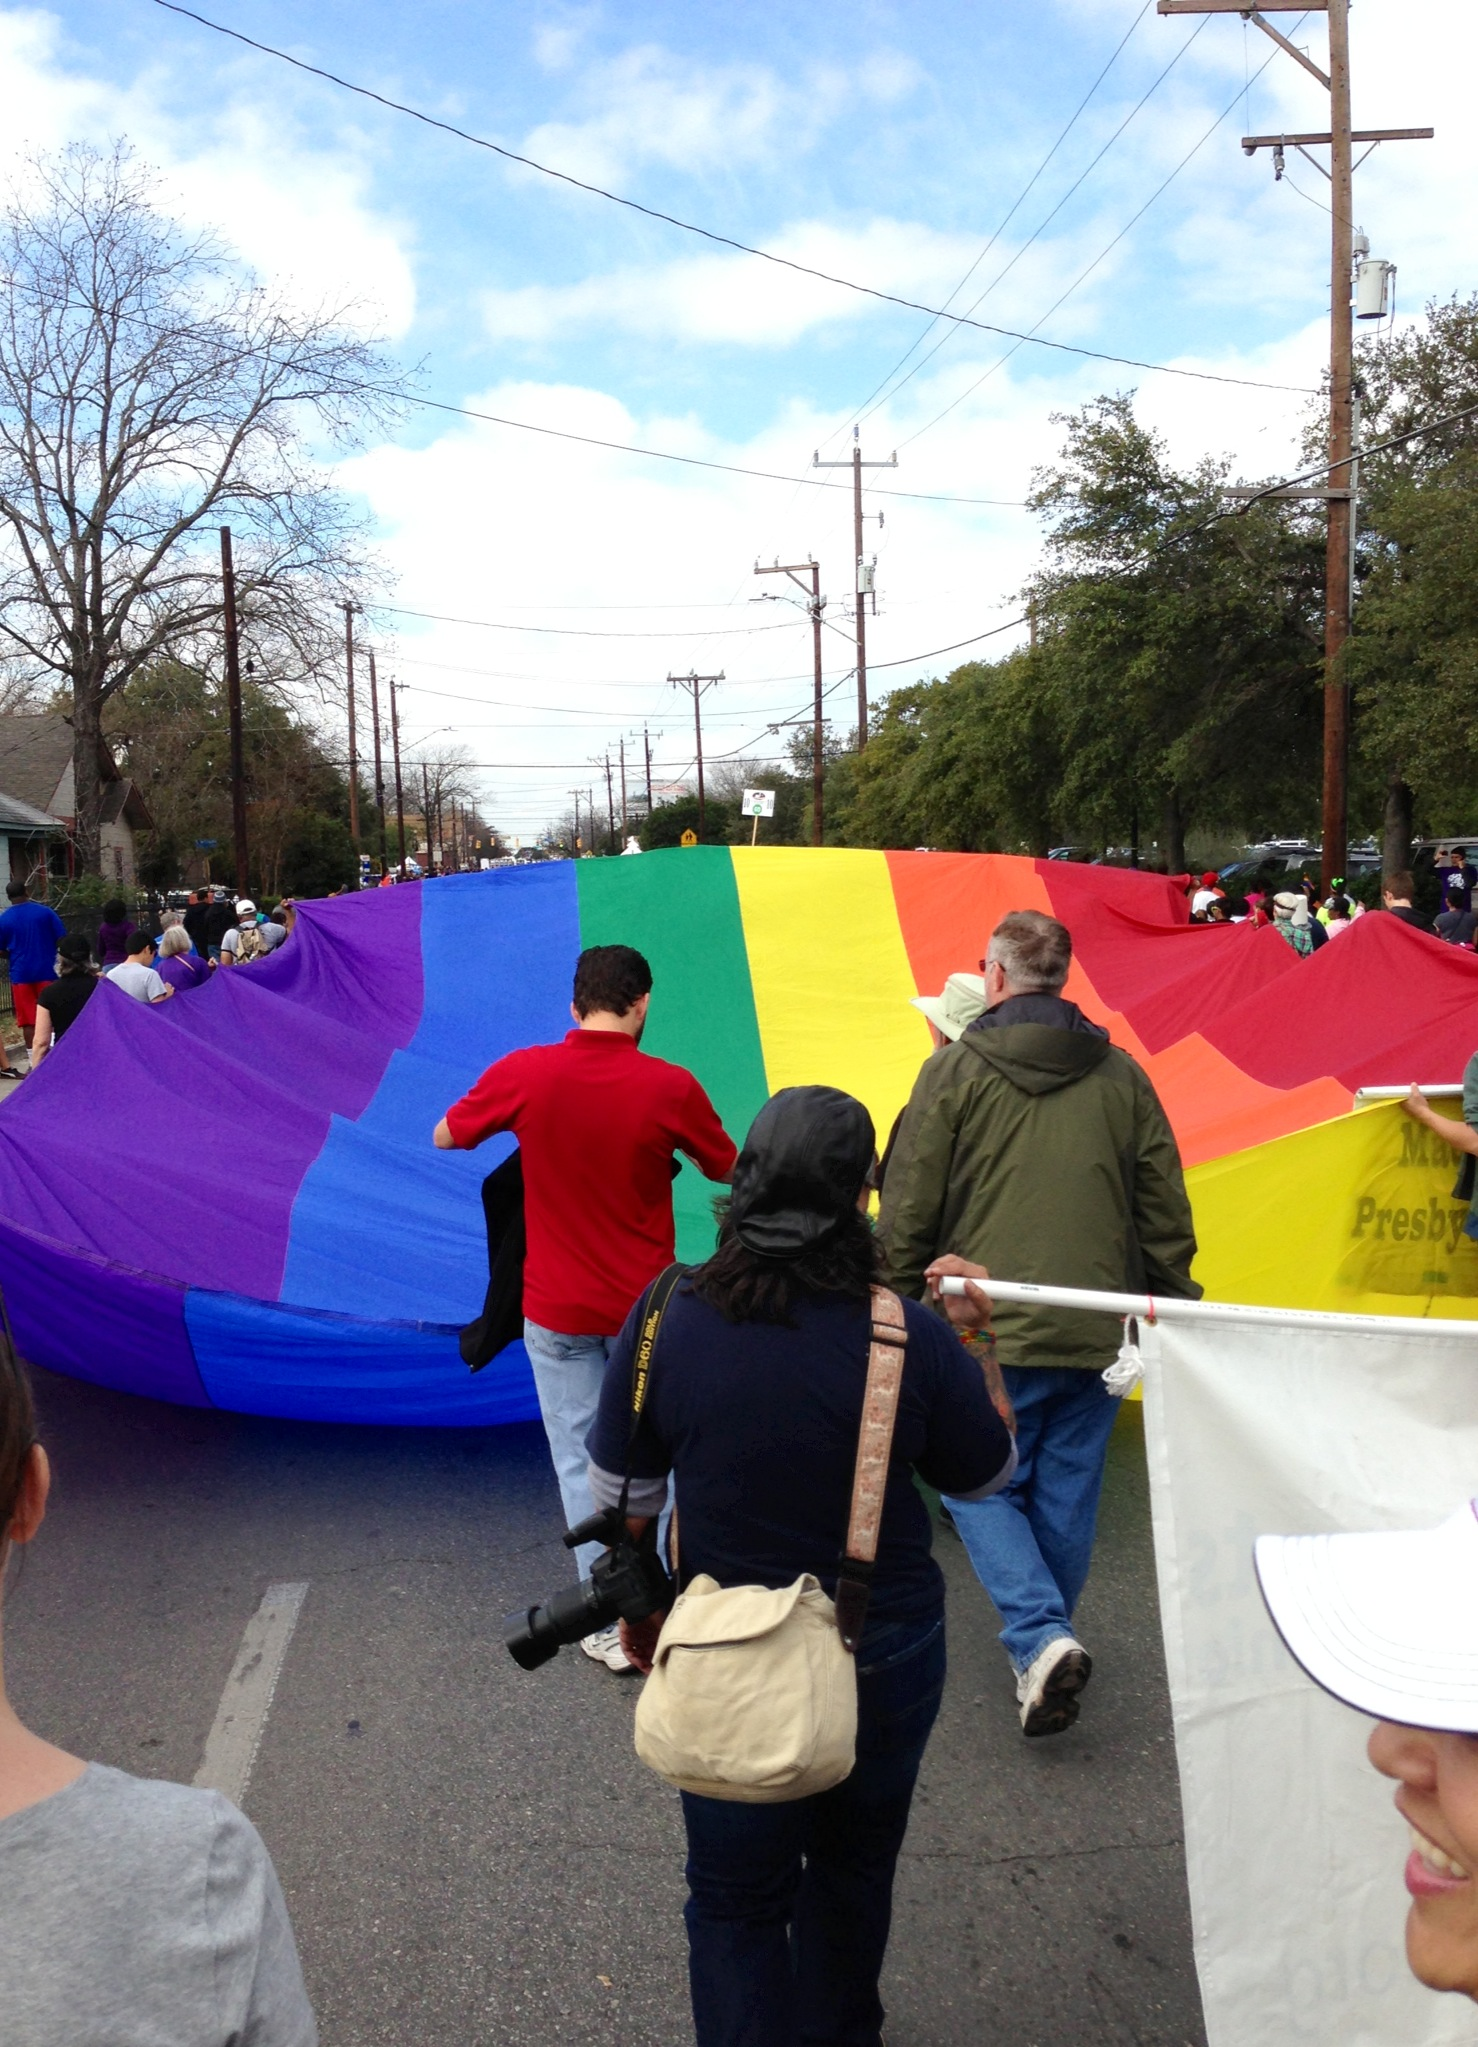 Members of the Madison Square Presbyterian Church carry the Rainbow flag/Freedom flag during the Martin Luther King, Jr. march in 2013. Photo by Lindsay Ratcliffe.